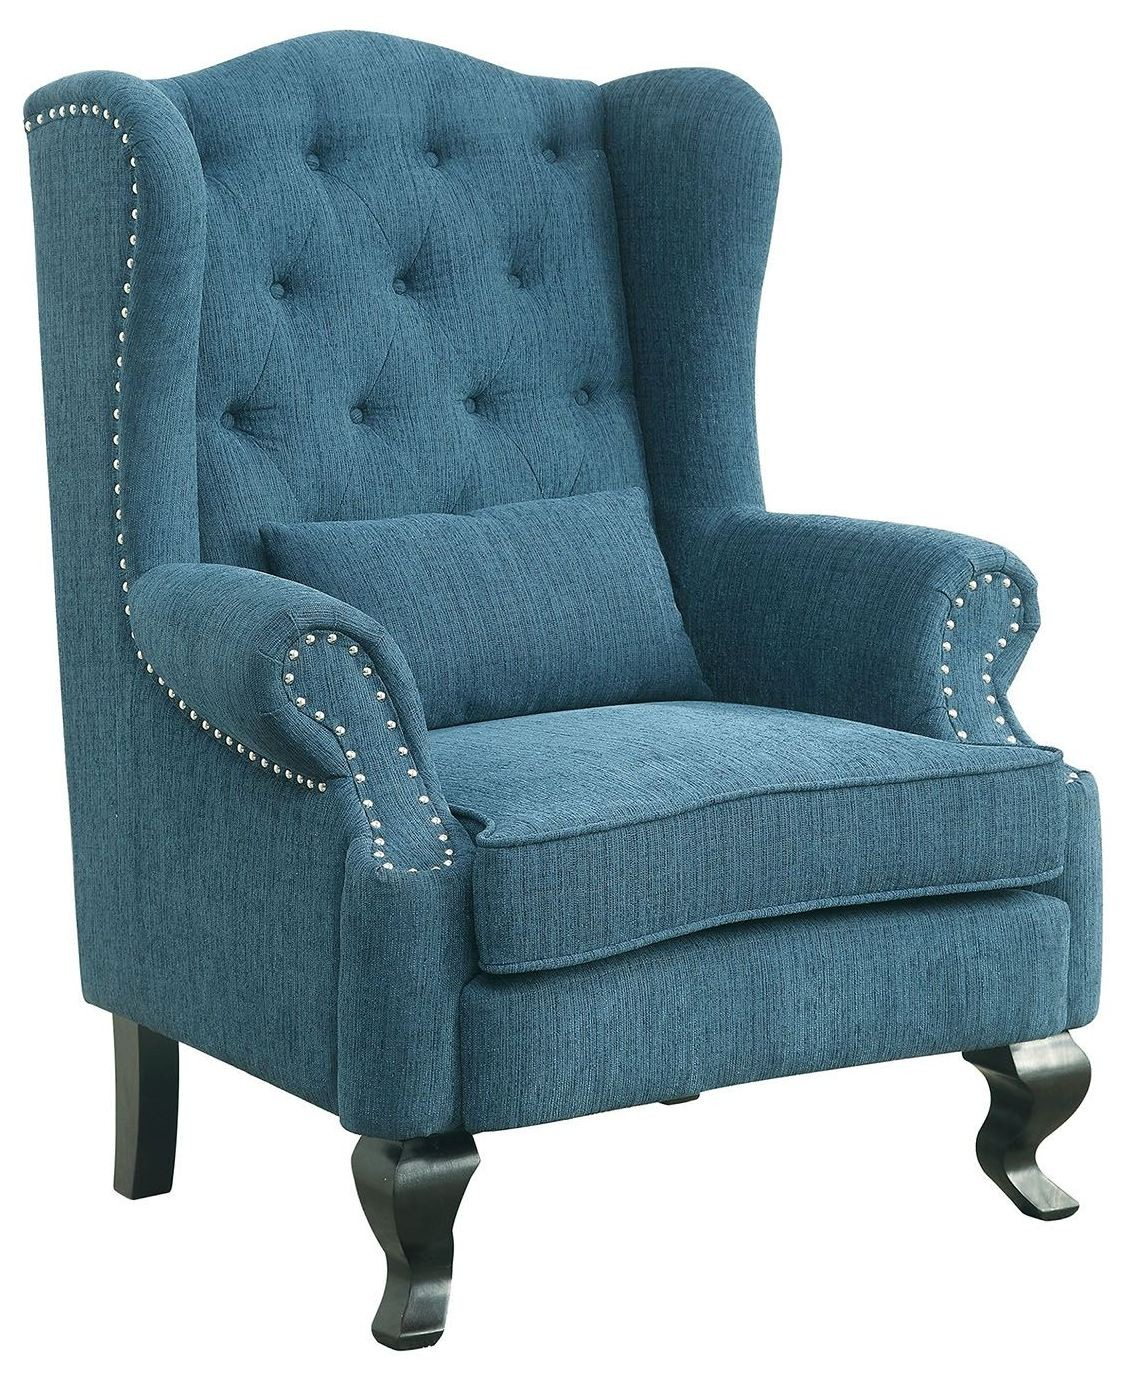 Willow Teal Accent Chair From Furniture Of America